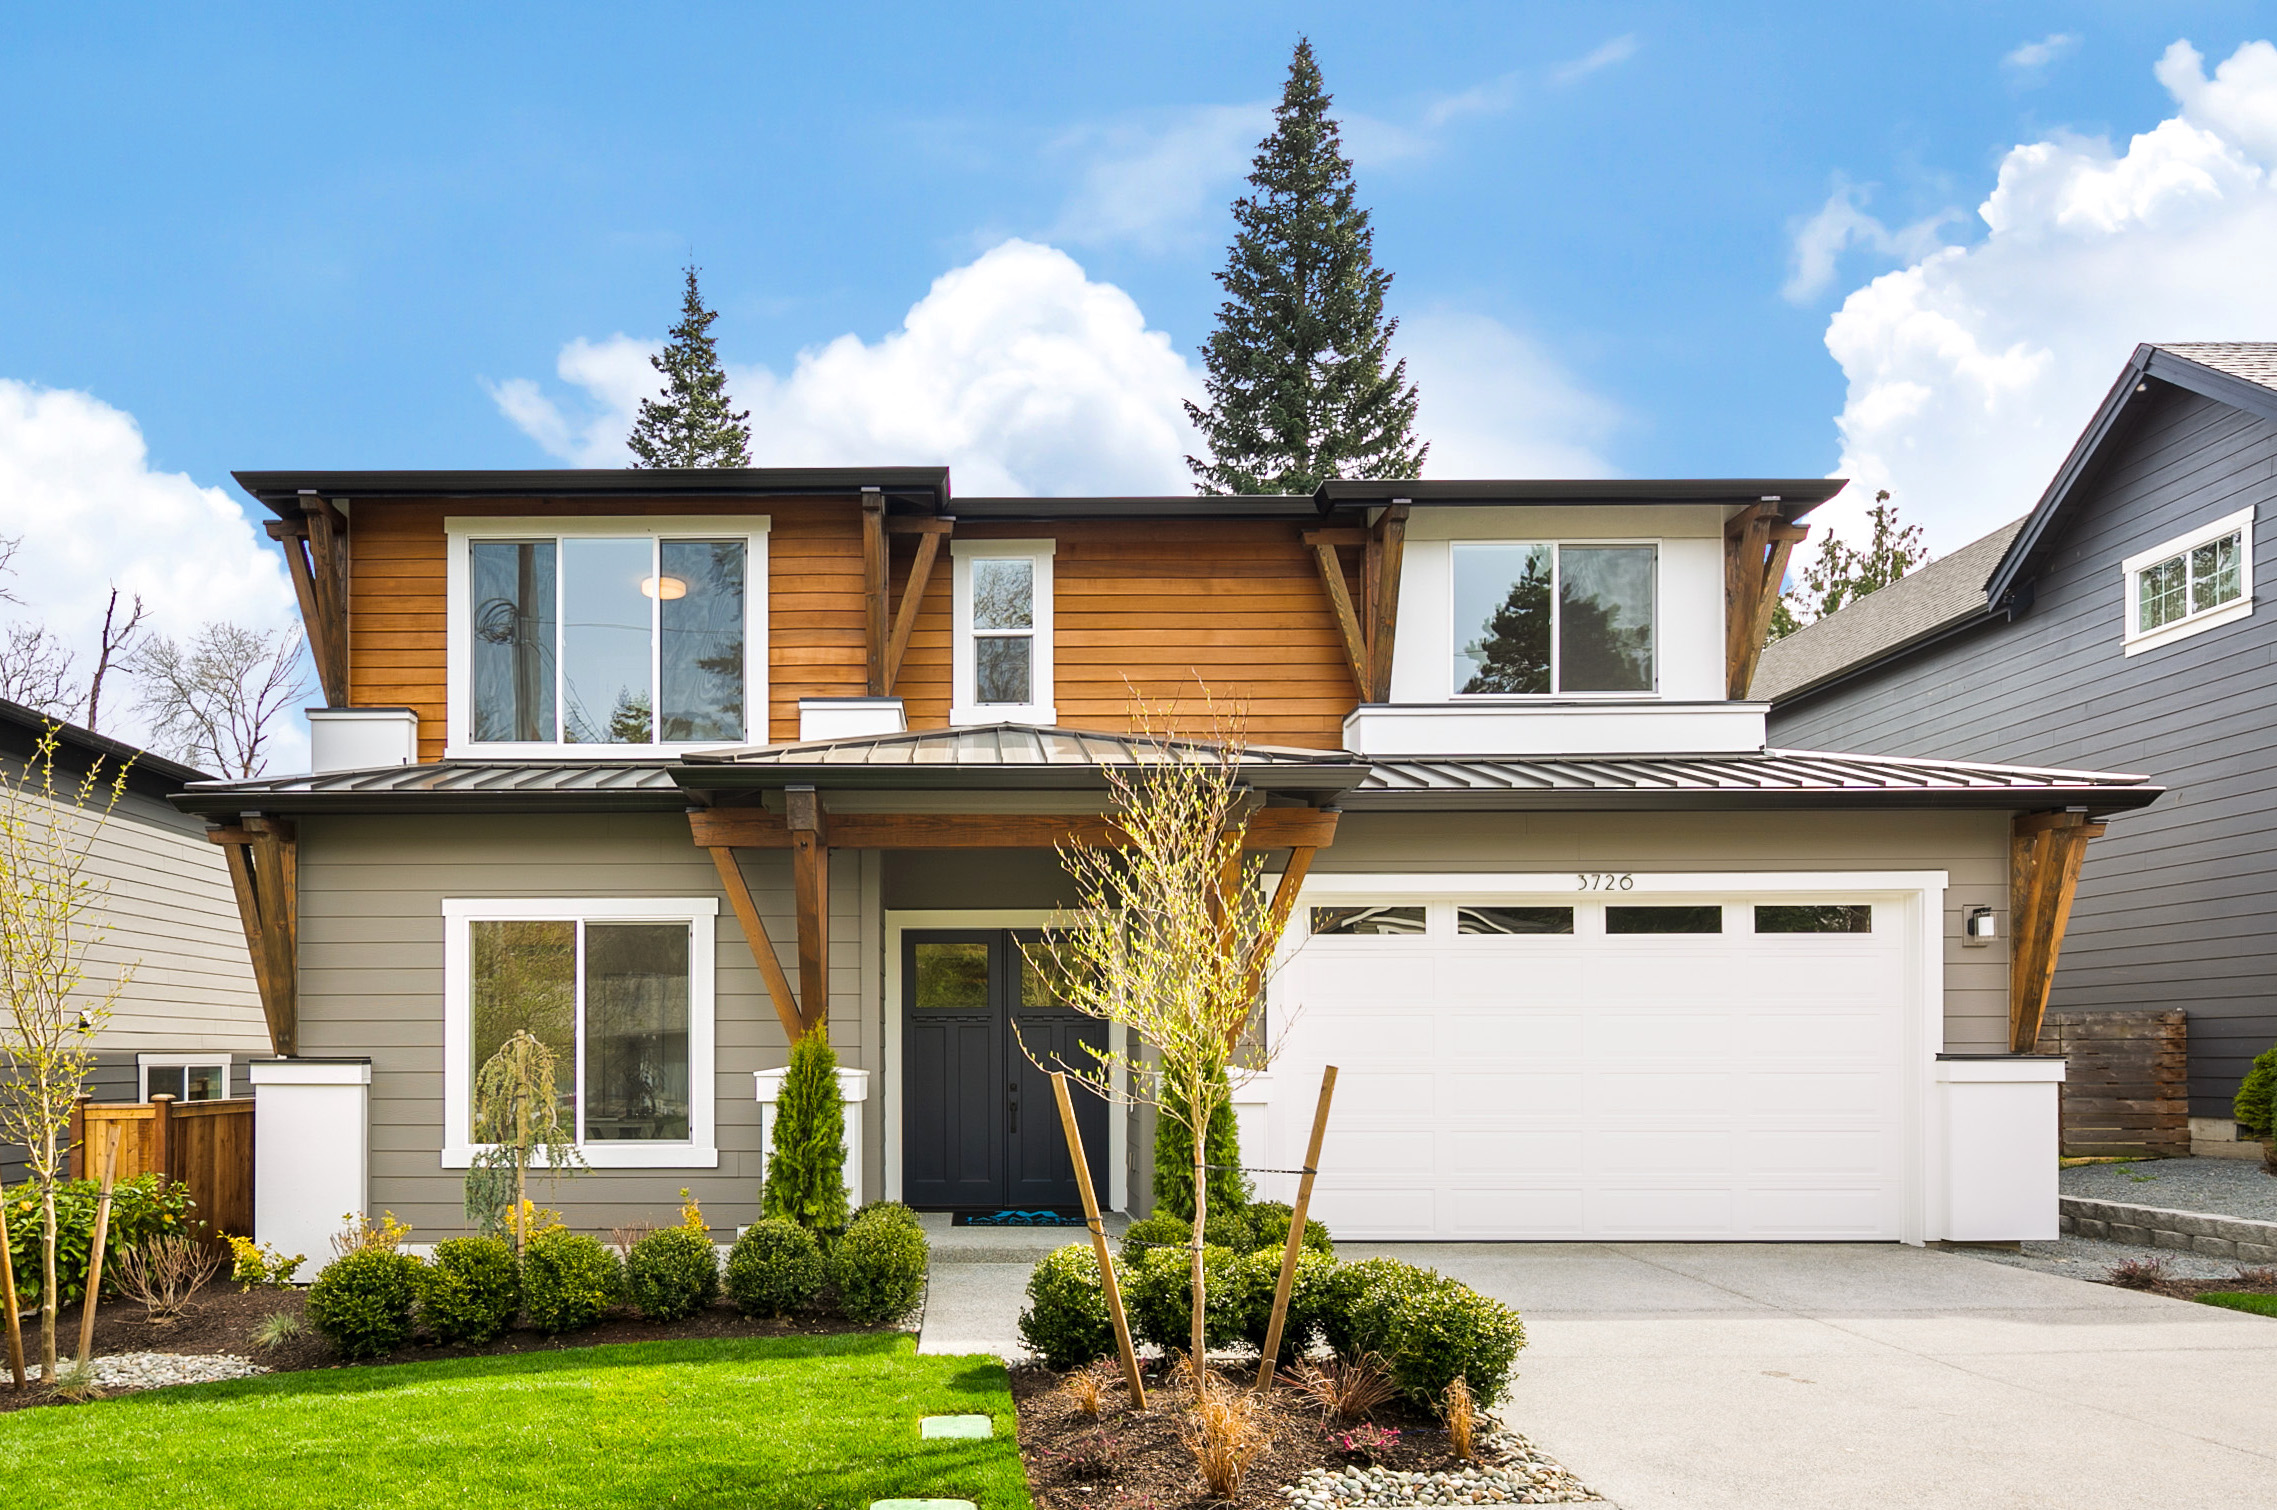 3726 86th Ave Se, Mercer Island | Sold for $2,448,000